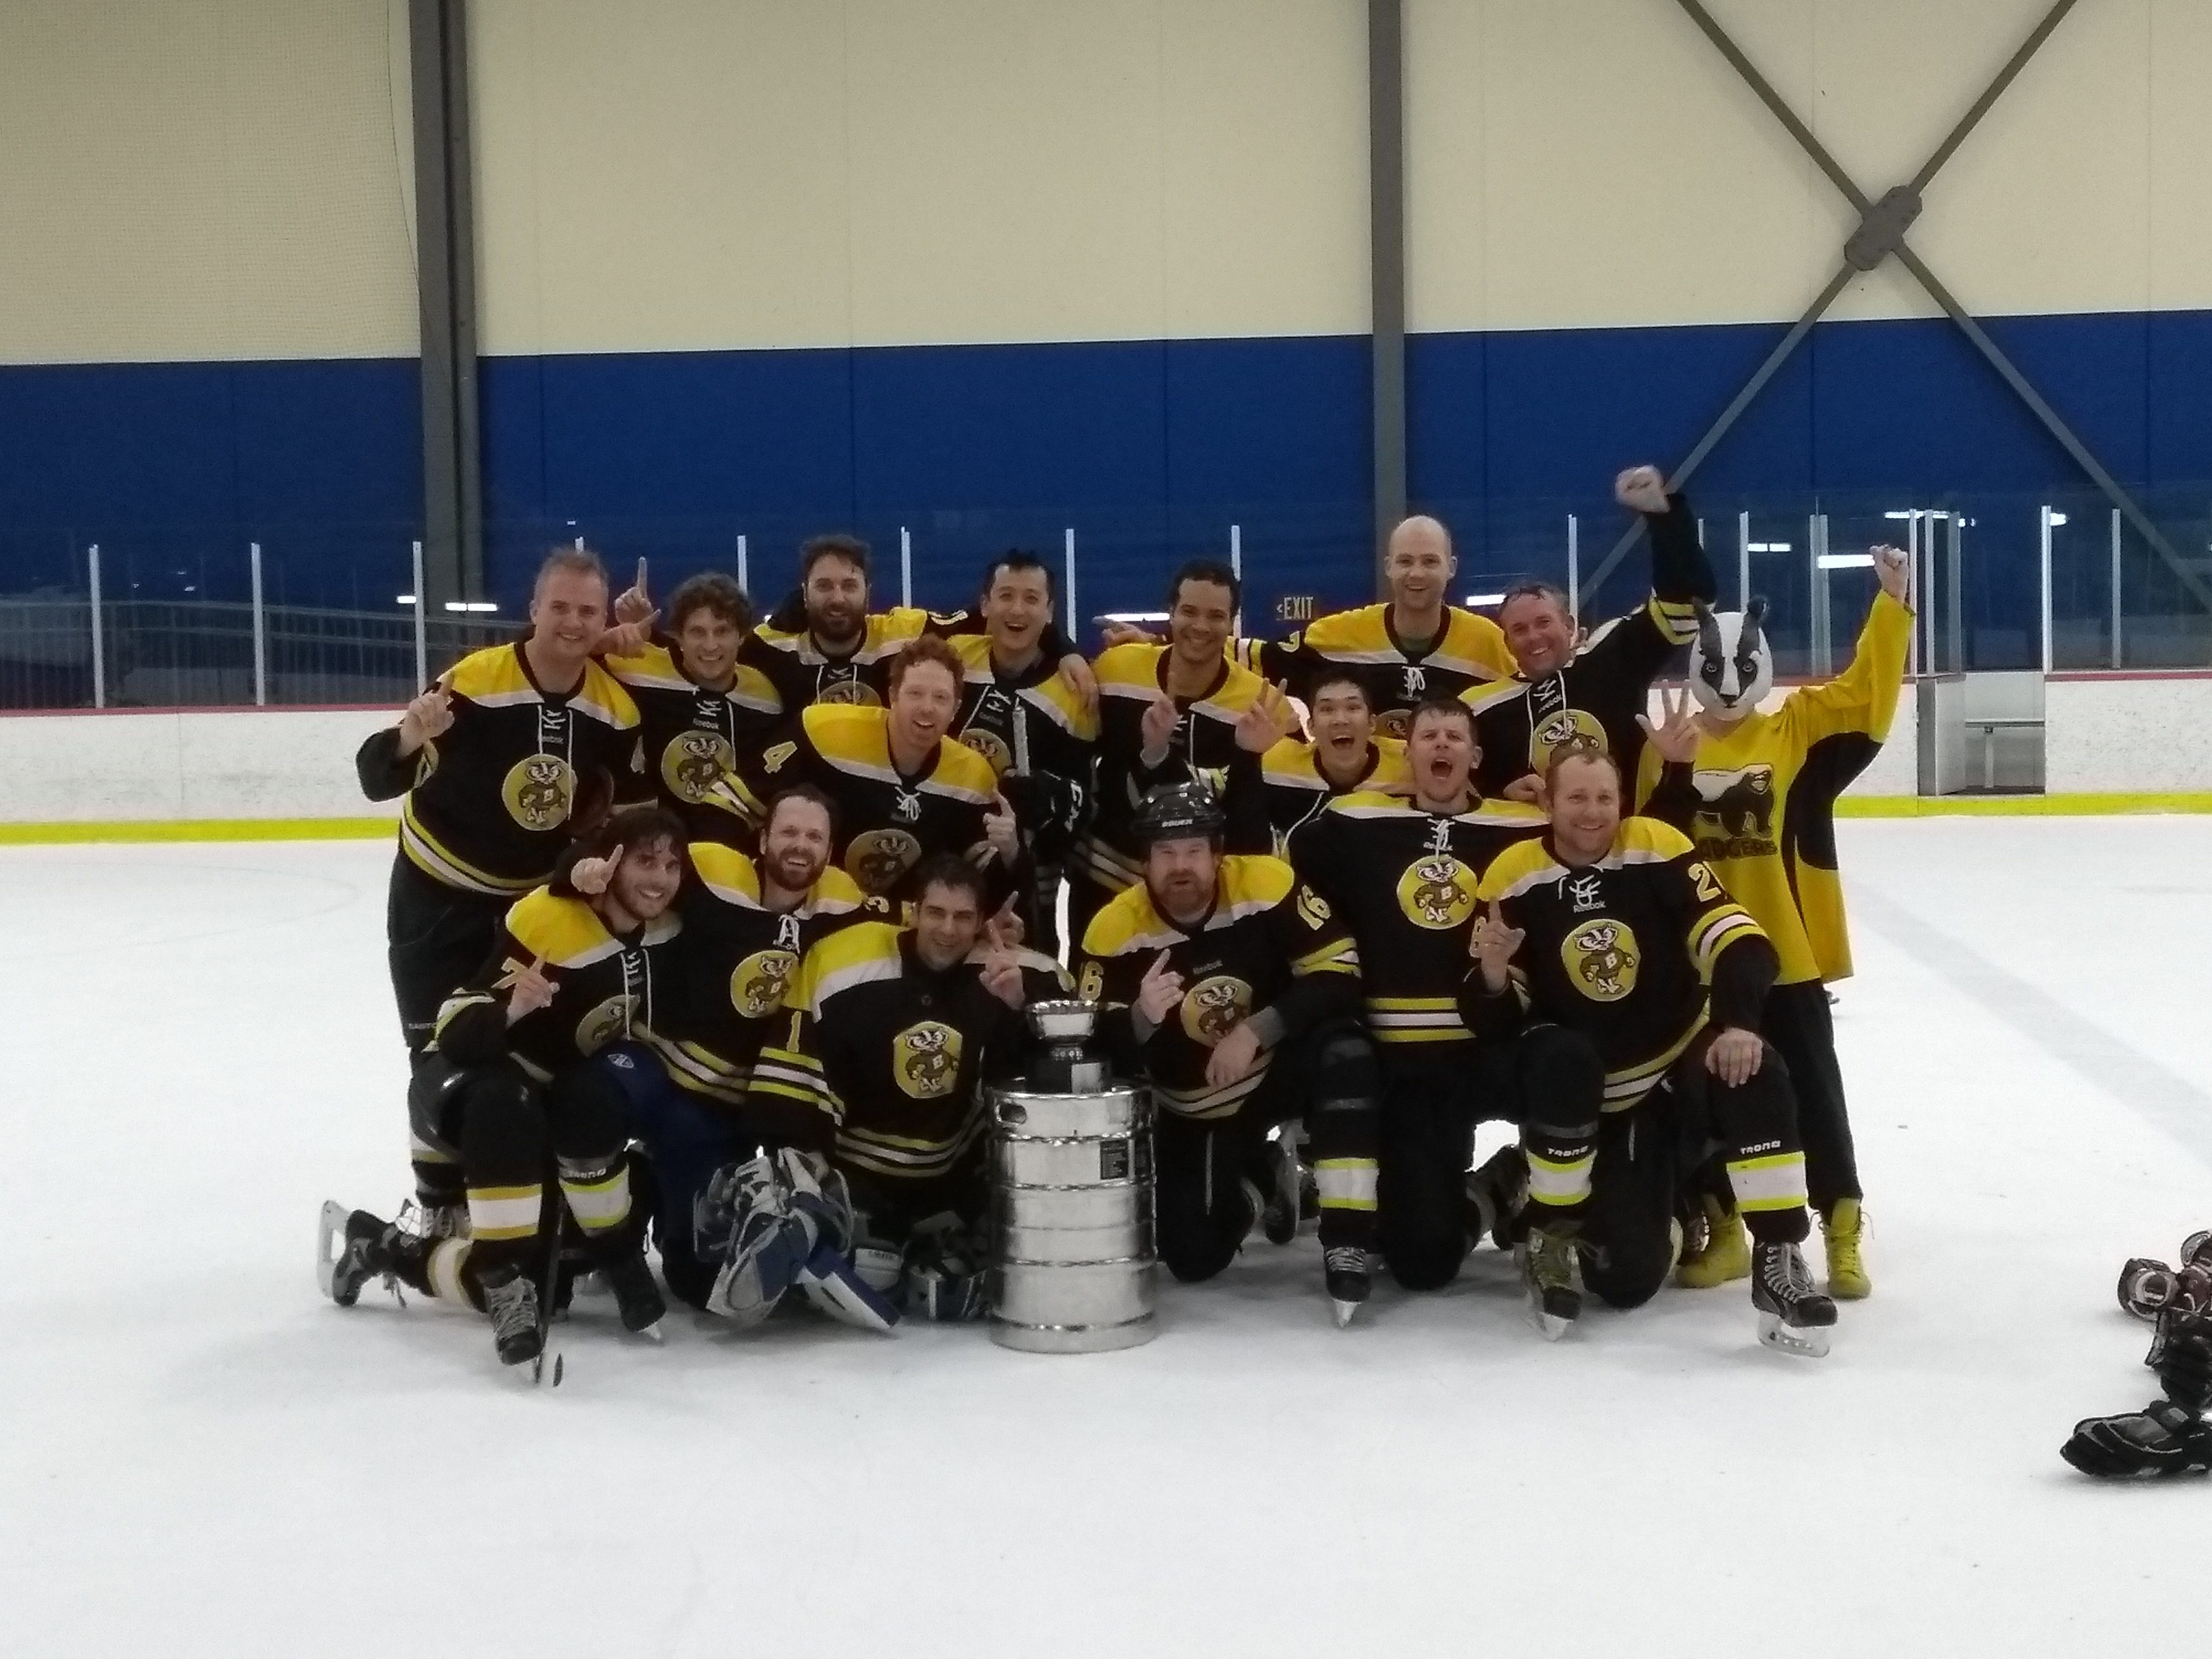 Thunderbird Adult Hockey League Ubc Recreation